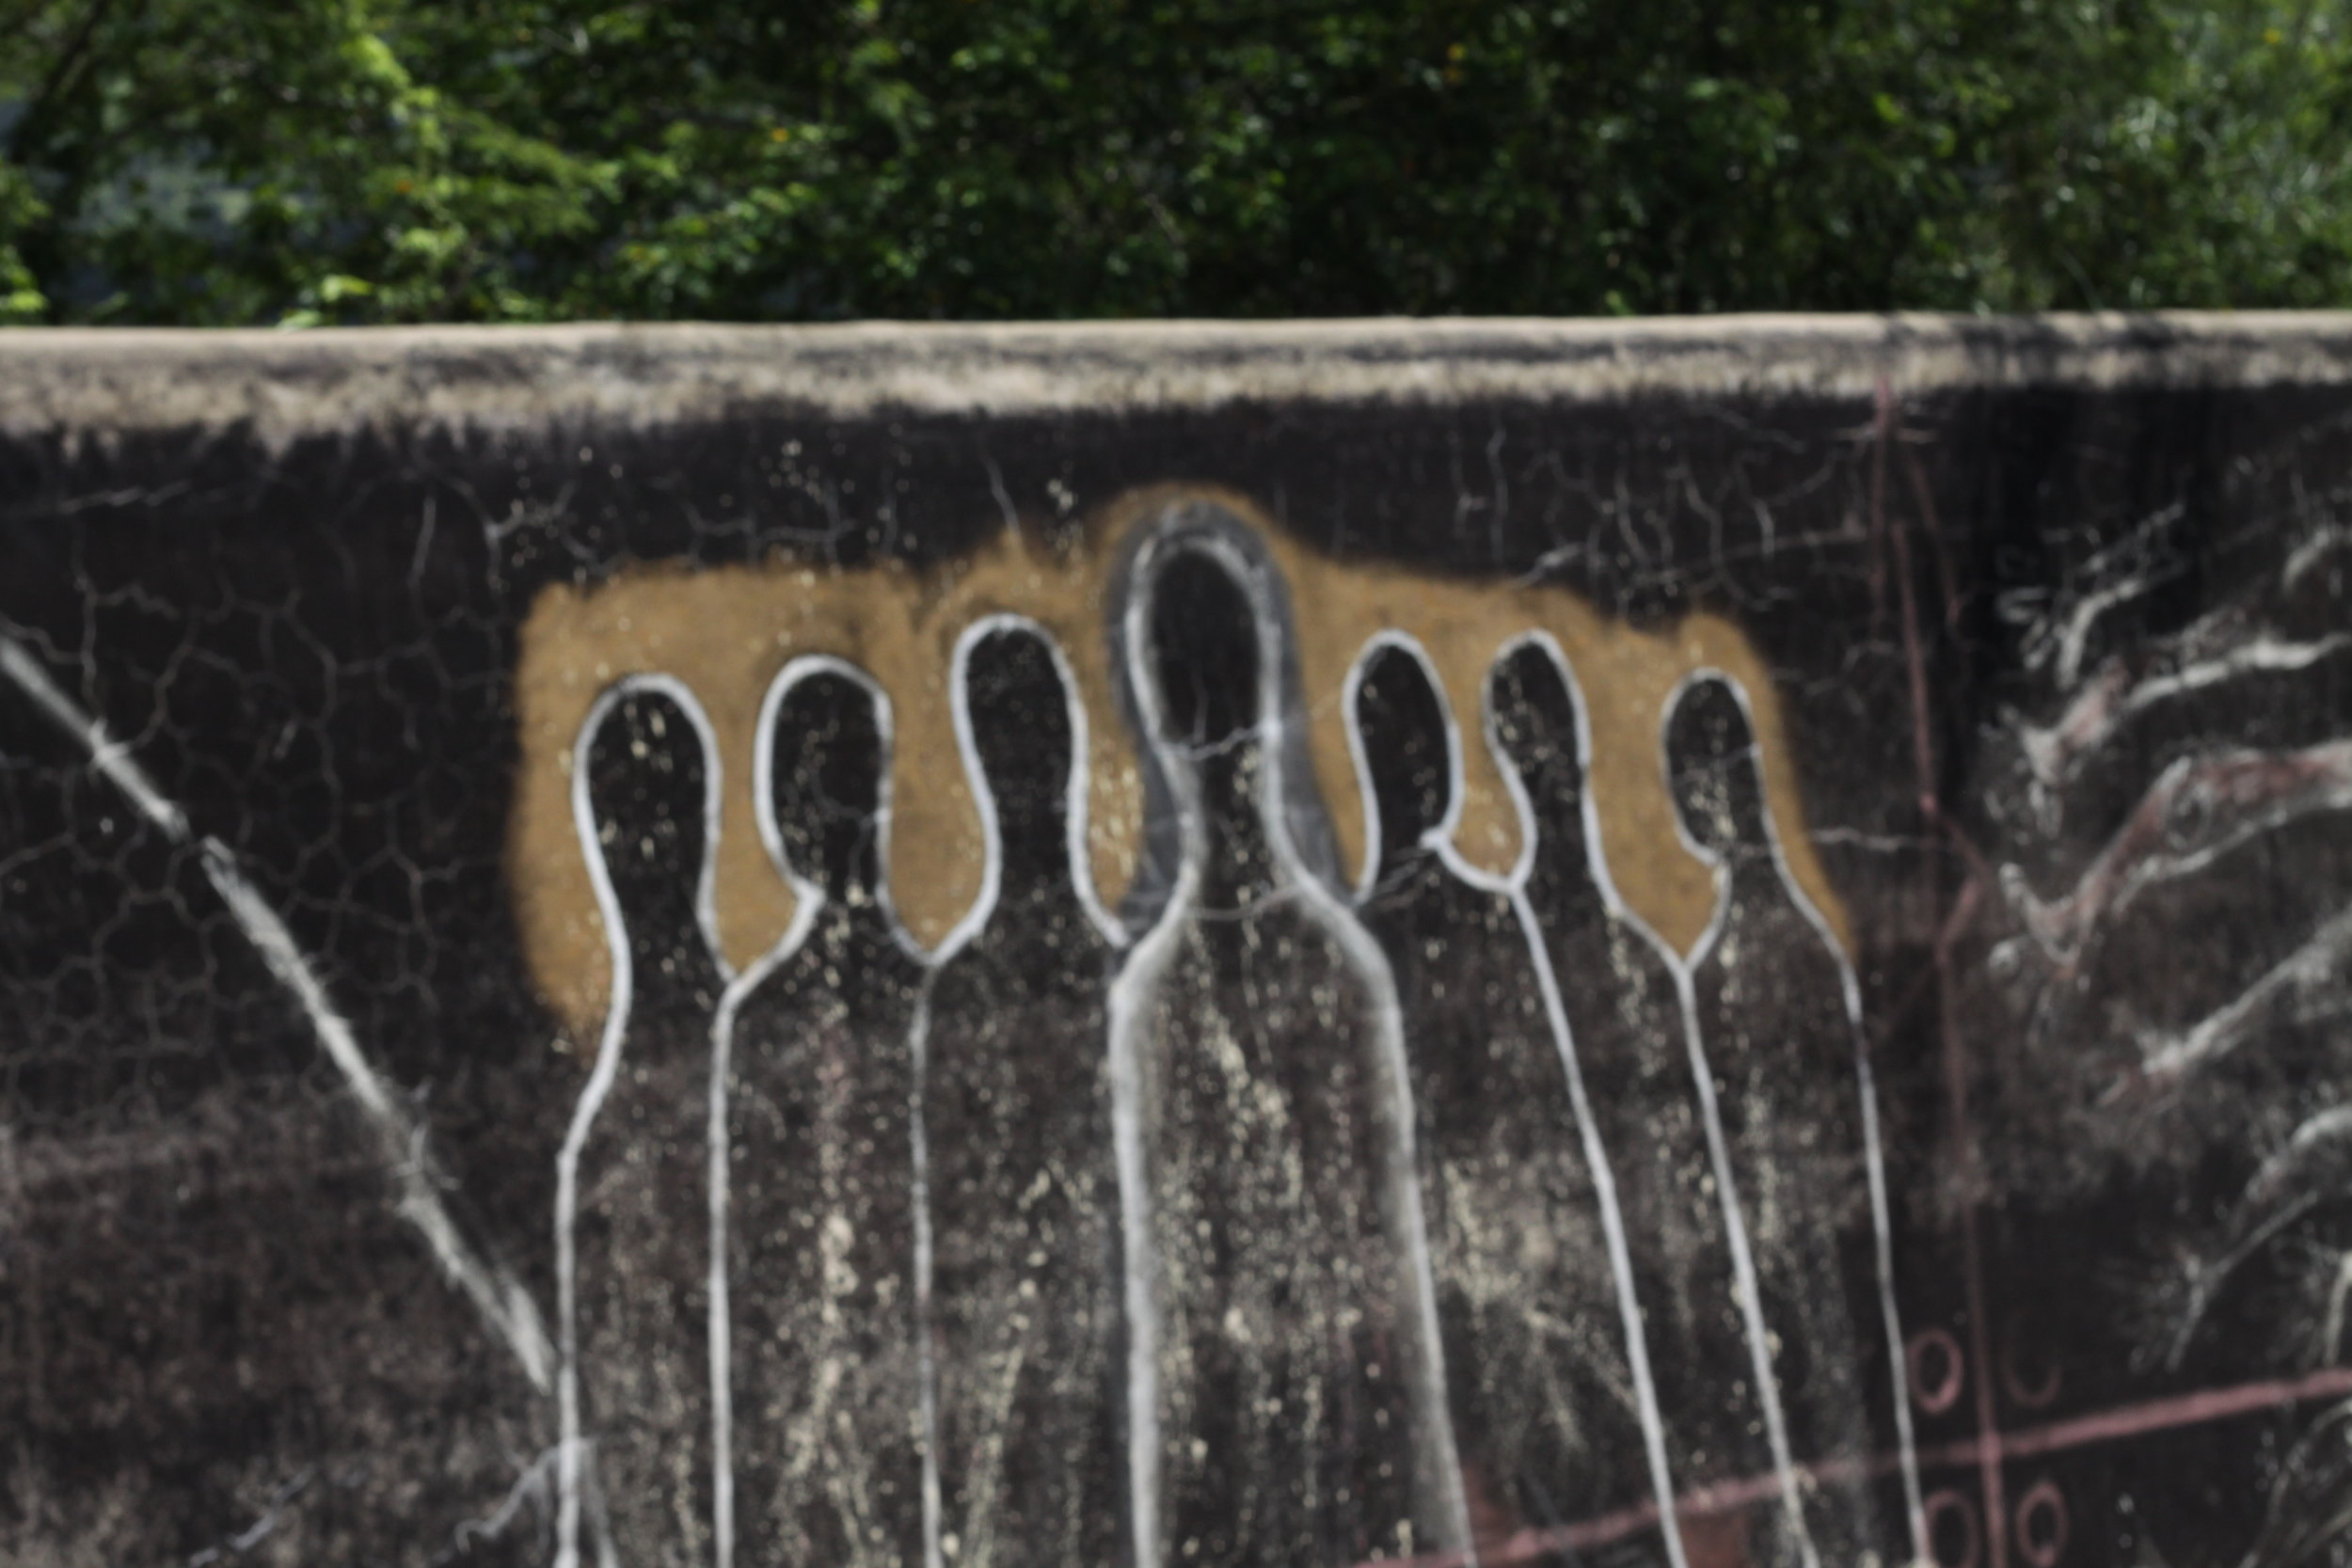 Images on a wall where a former maroon community resided near Santiago de Cuba (July 2012)